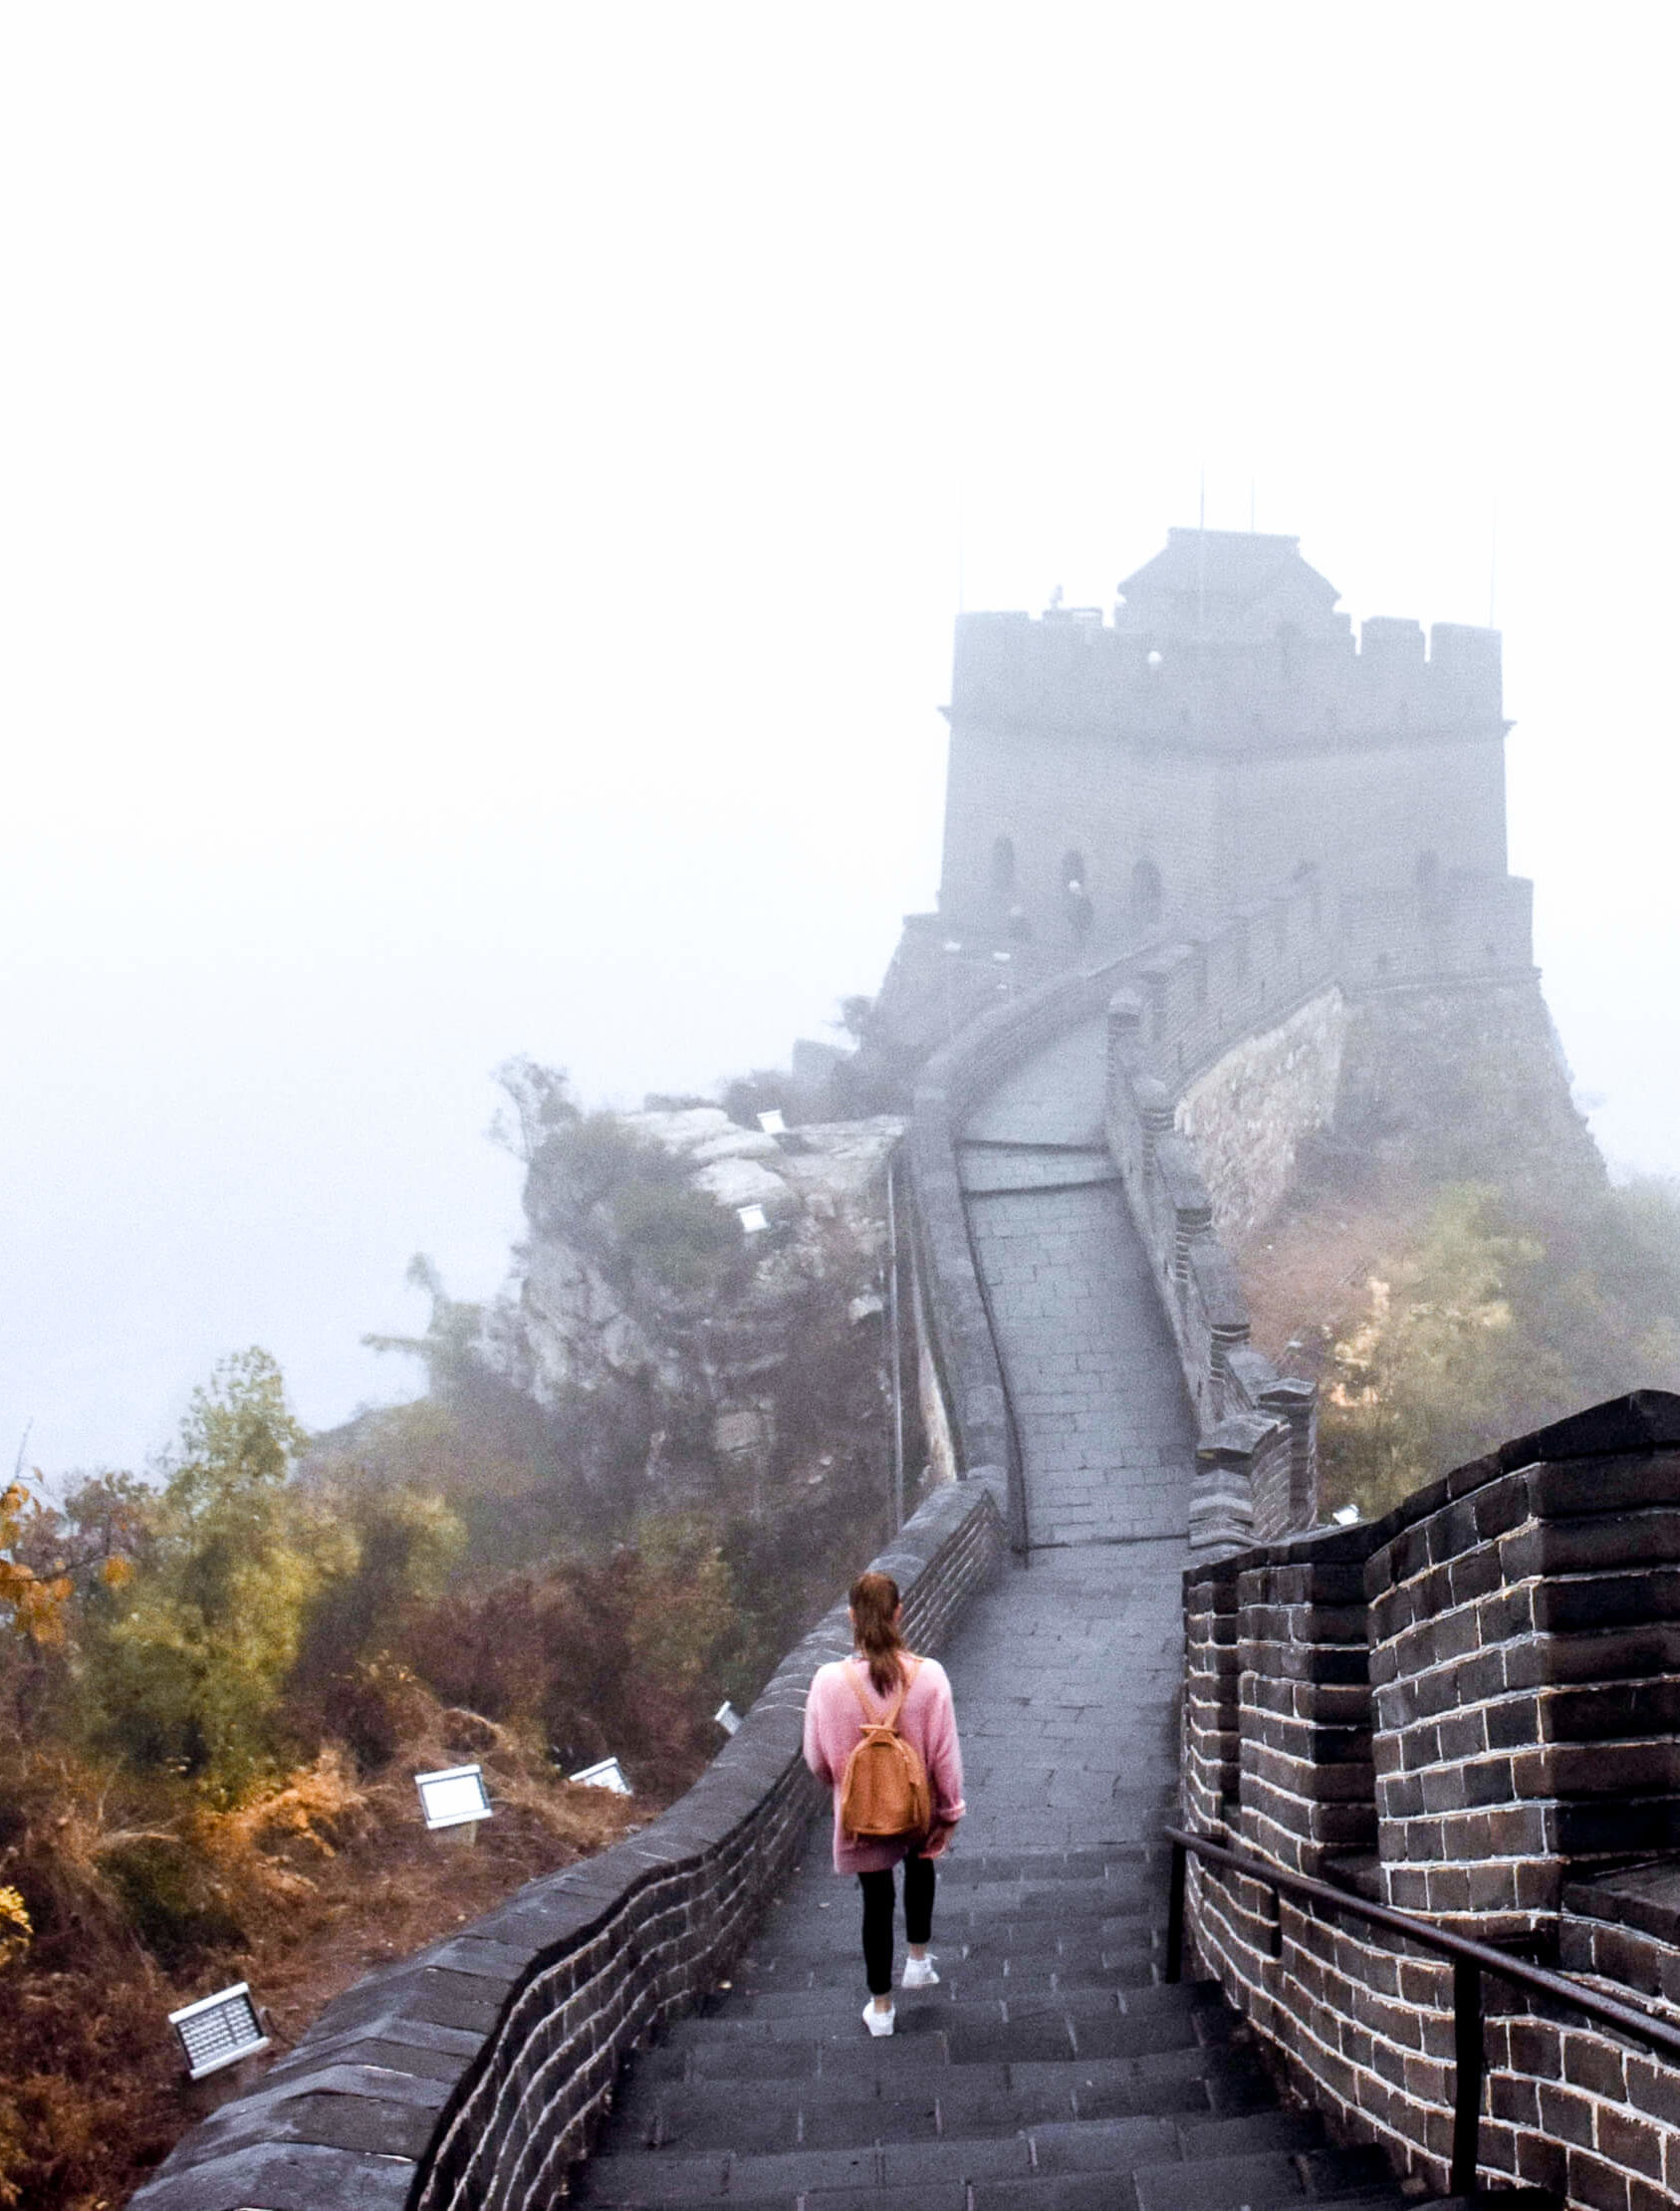 A girl in a pink jumper walking the Great Wall of China, high up in the fog